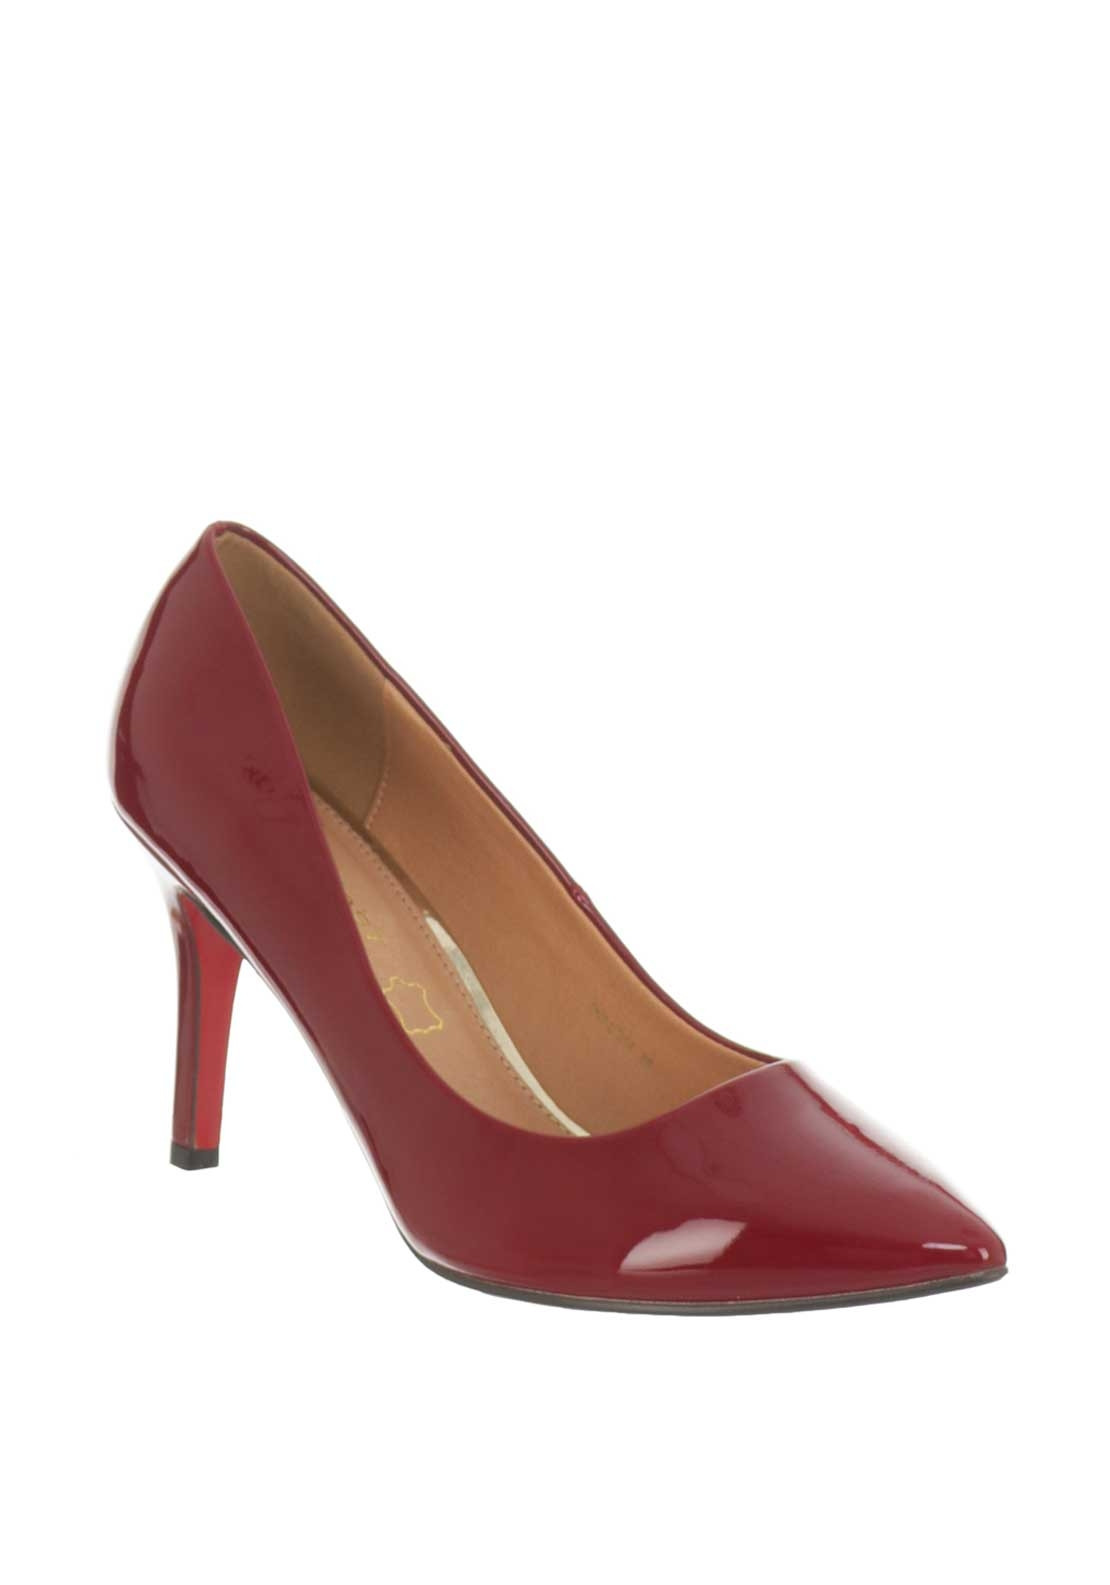 Red Sole Shoes Appleby